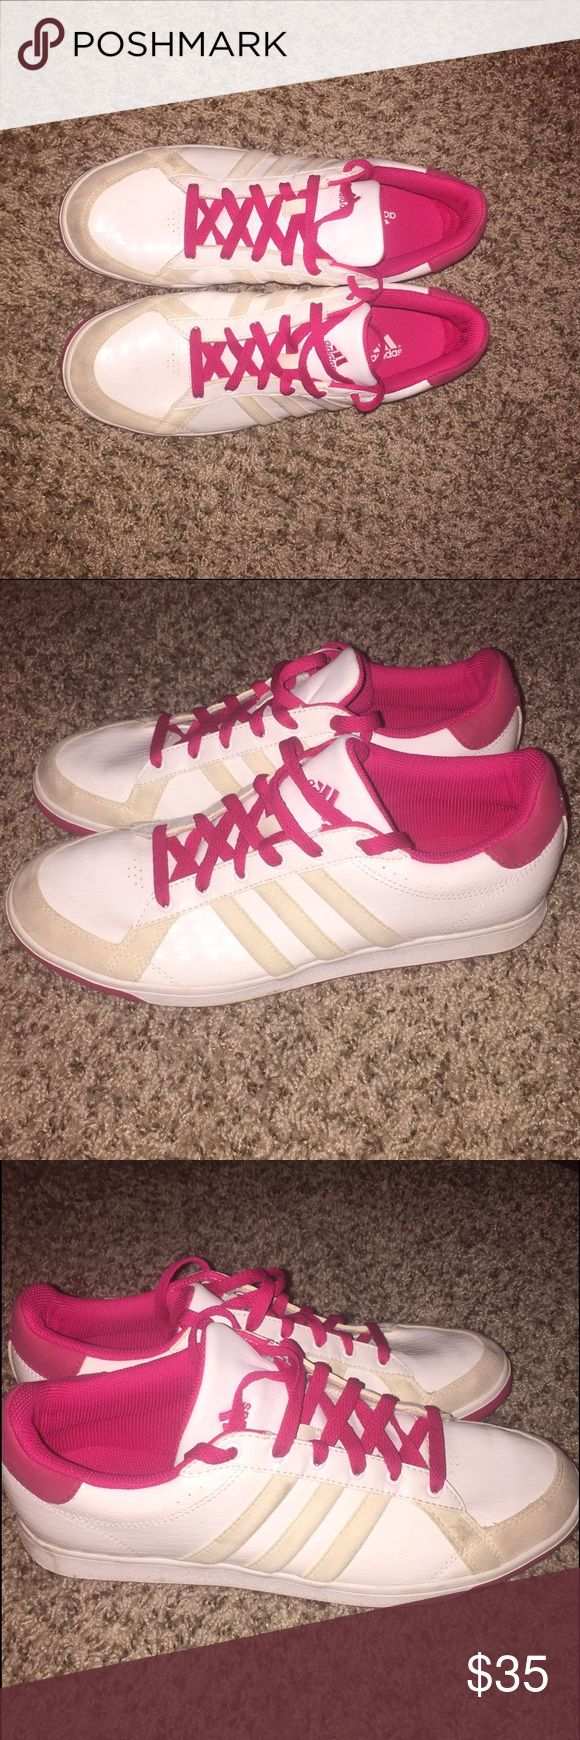 Adidas Originals Superstar Foundation White /Hot P Adidas Originals Superstar Foundation White /Hot Pink Women's Sneakers ... Gently Used , Size 10 ... They still in great shape . Really comfortable Adidas Shoes Sneakers